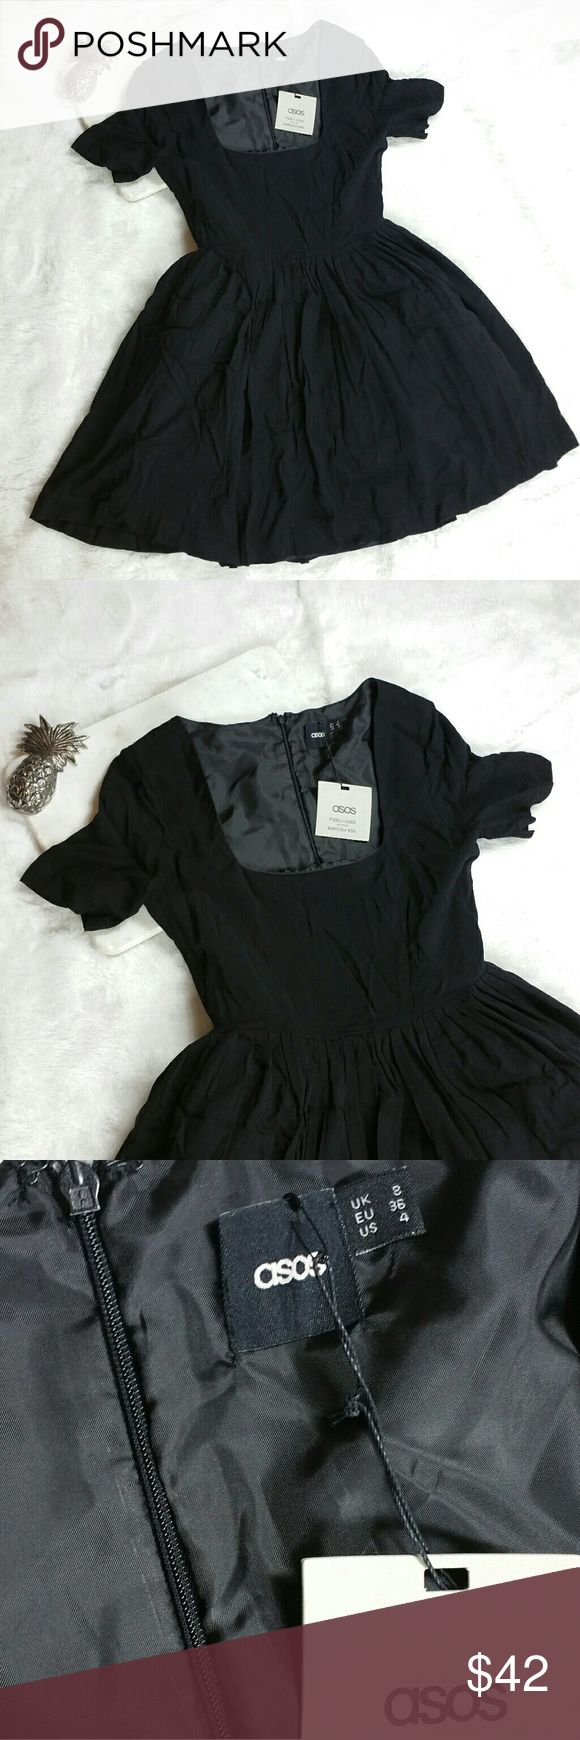 Asos Tutu Skirt mini Dress size 4 Asos Tutu Skirt mini Dress size 4  The only flaw is that the tag is falling off  New with tags purchased at a second hand store  Pit to pit 16in Waist 12in Top to bottom 31in ASOS Dresses Mini